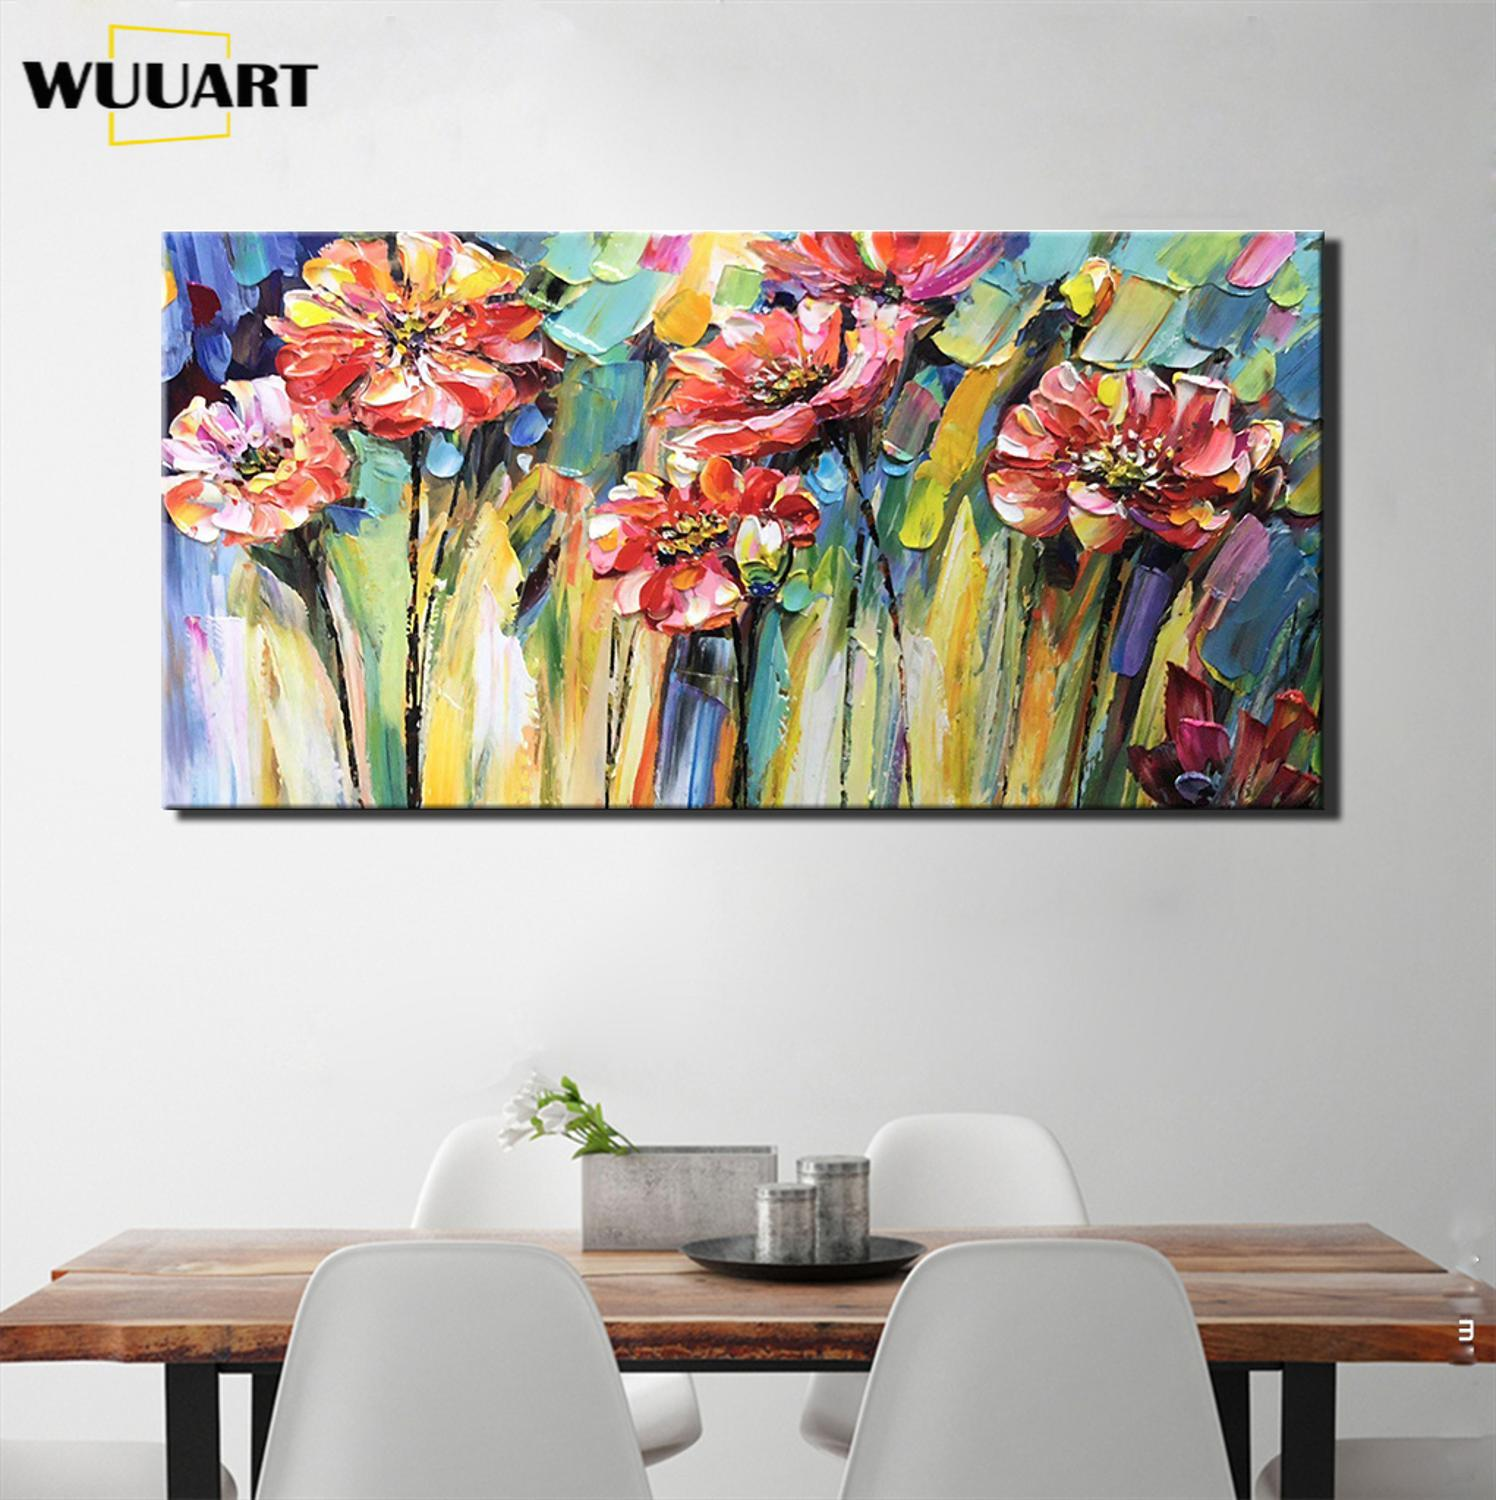 Hand-Painted Flower Oil Painting On Canvas Abstract Art Knife Paintings Modern Home Hotel Office Interior Decor Wall Art picture